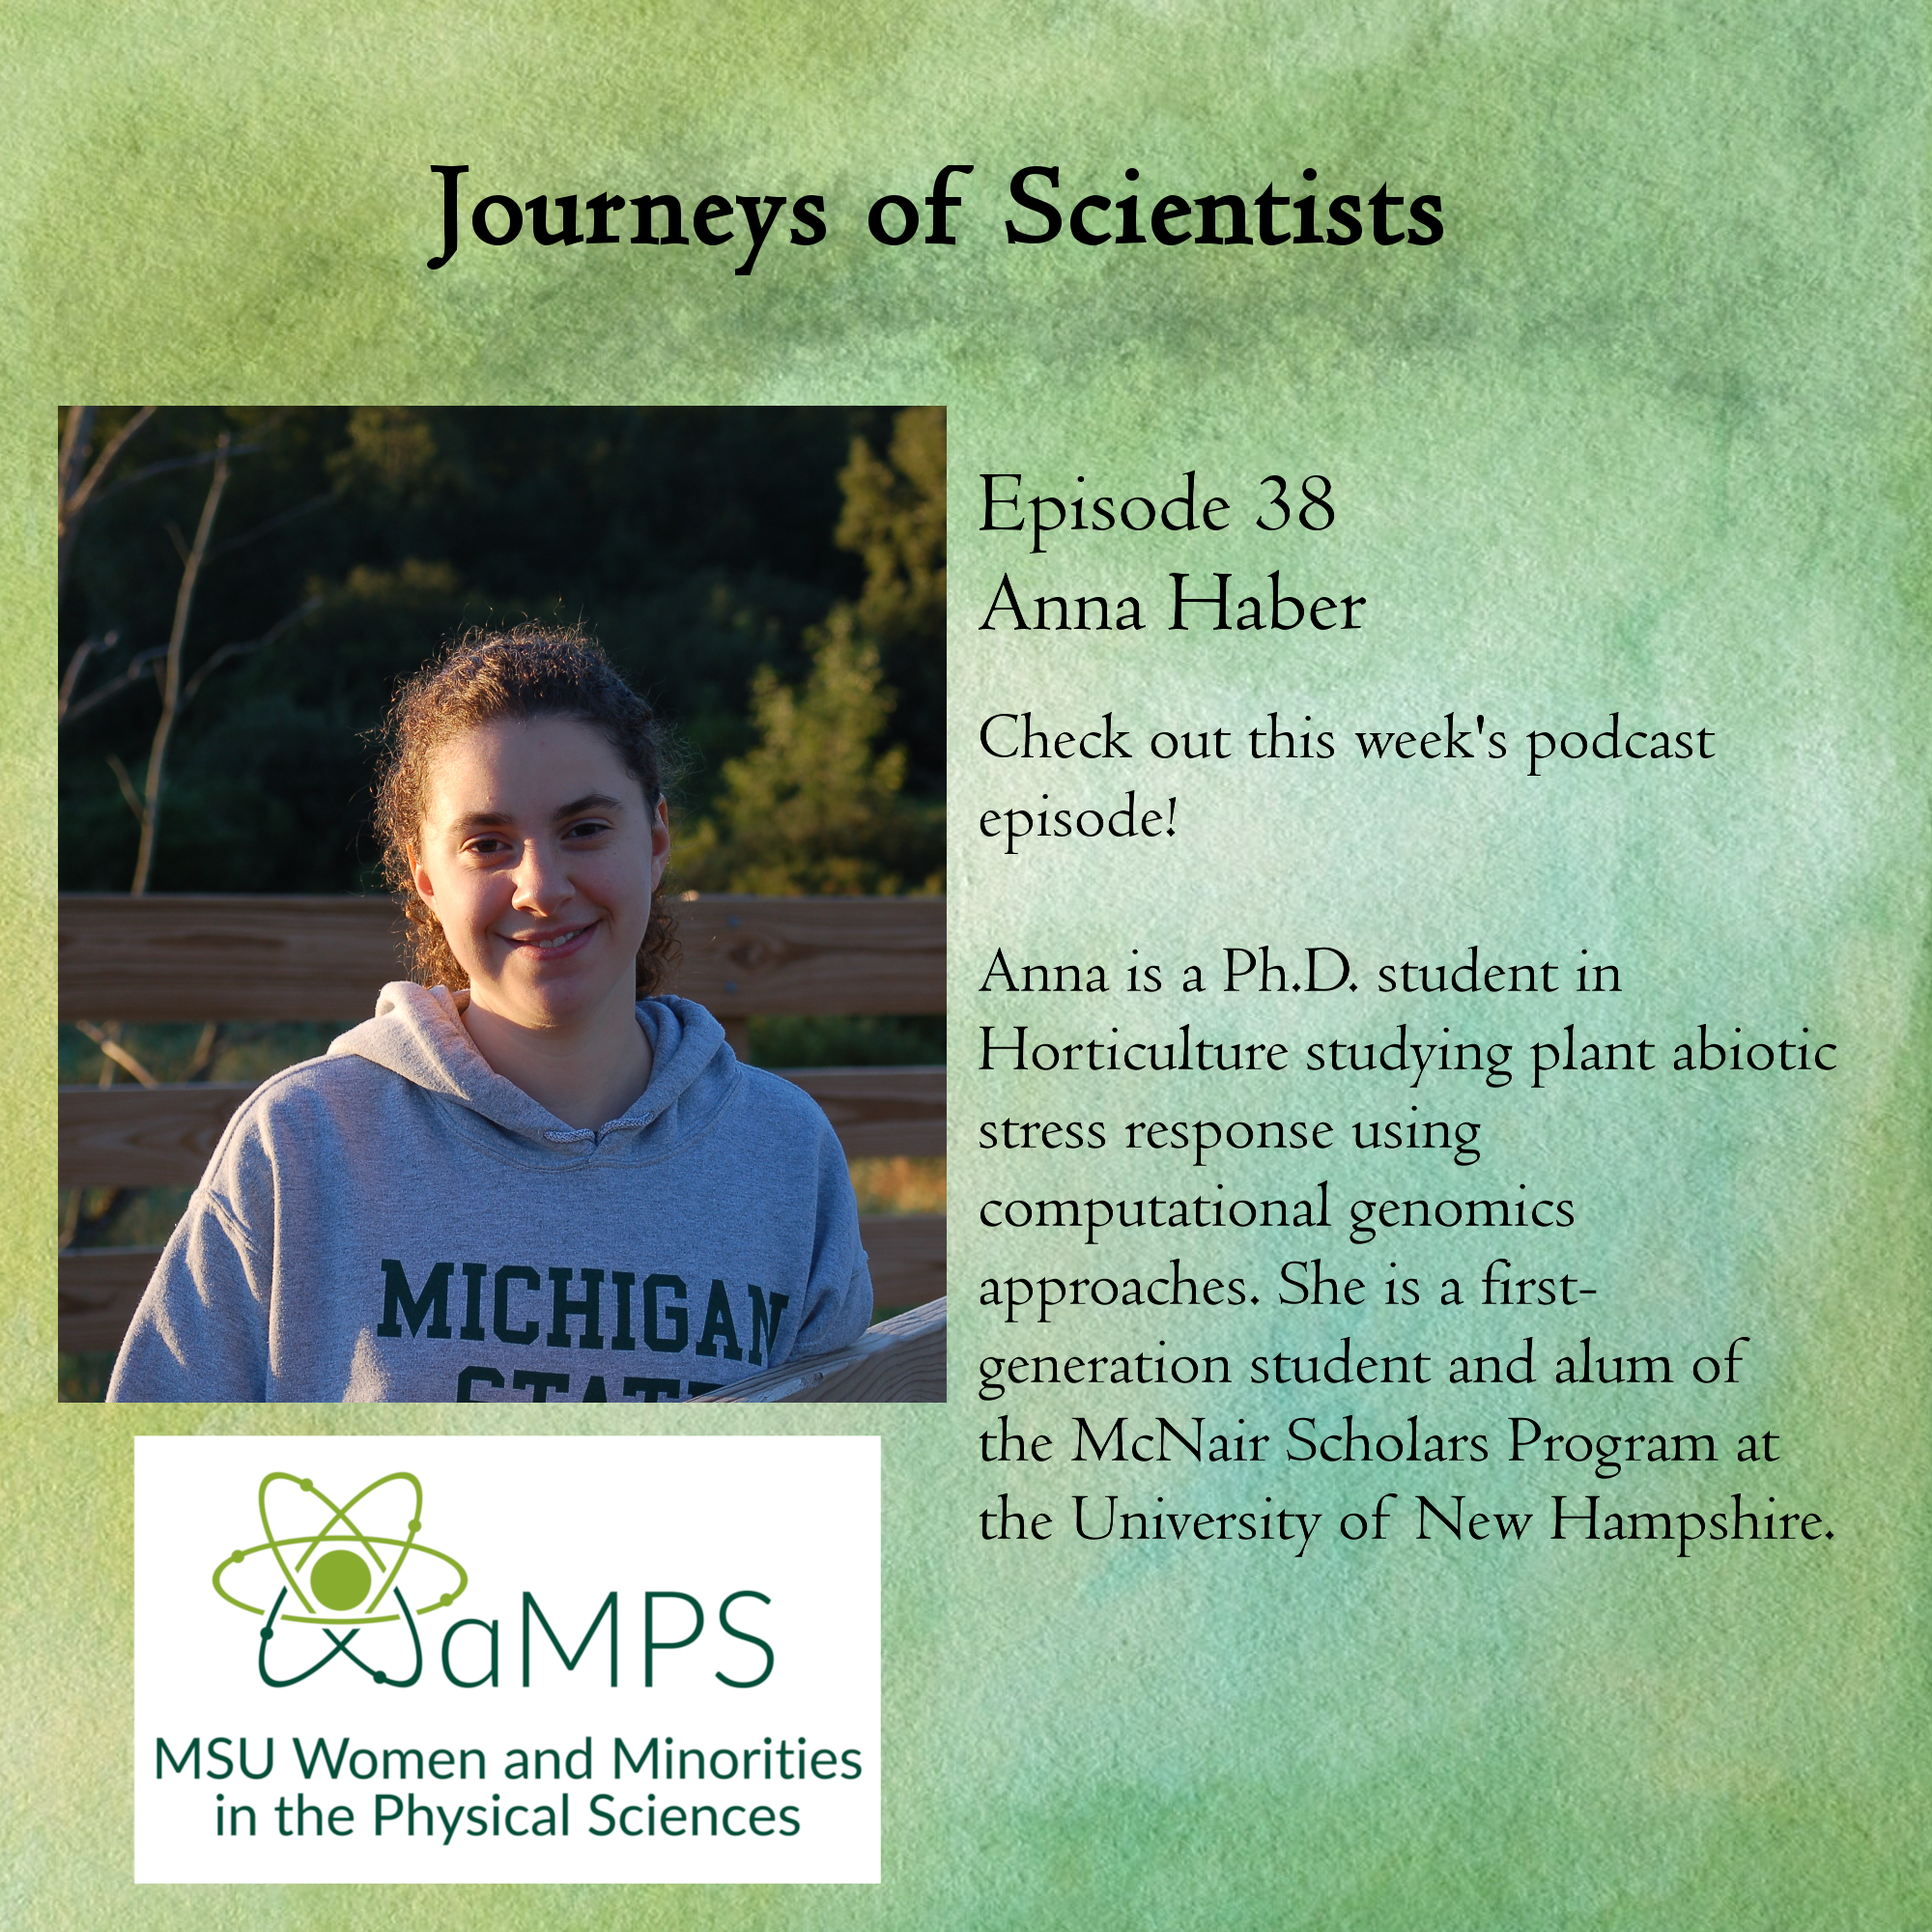 Anna is a Ph.D. student in Horticulture studying plant abiotic stress response using computational genomics approaches. She is a first-generation student and alum of the McNair Scholars Program at the University of New Hampshire.